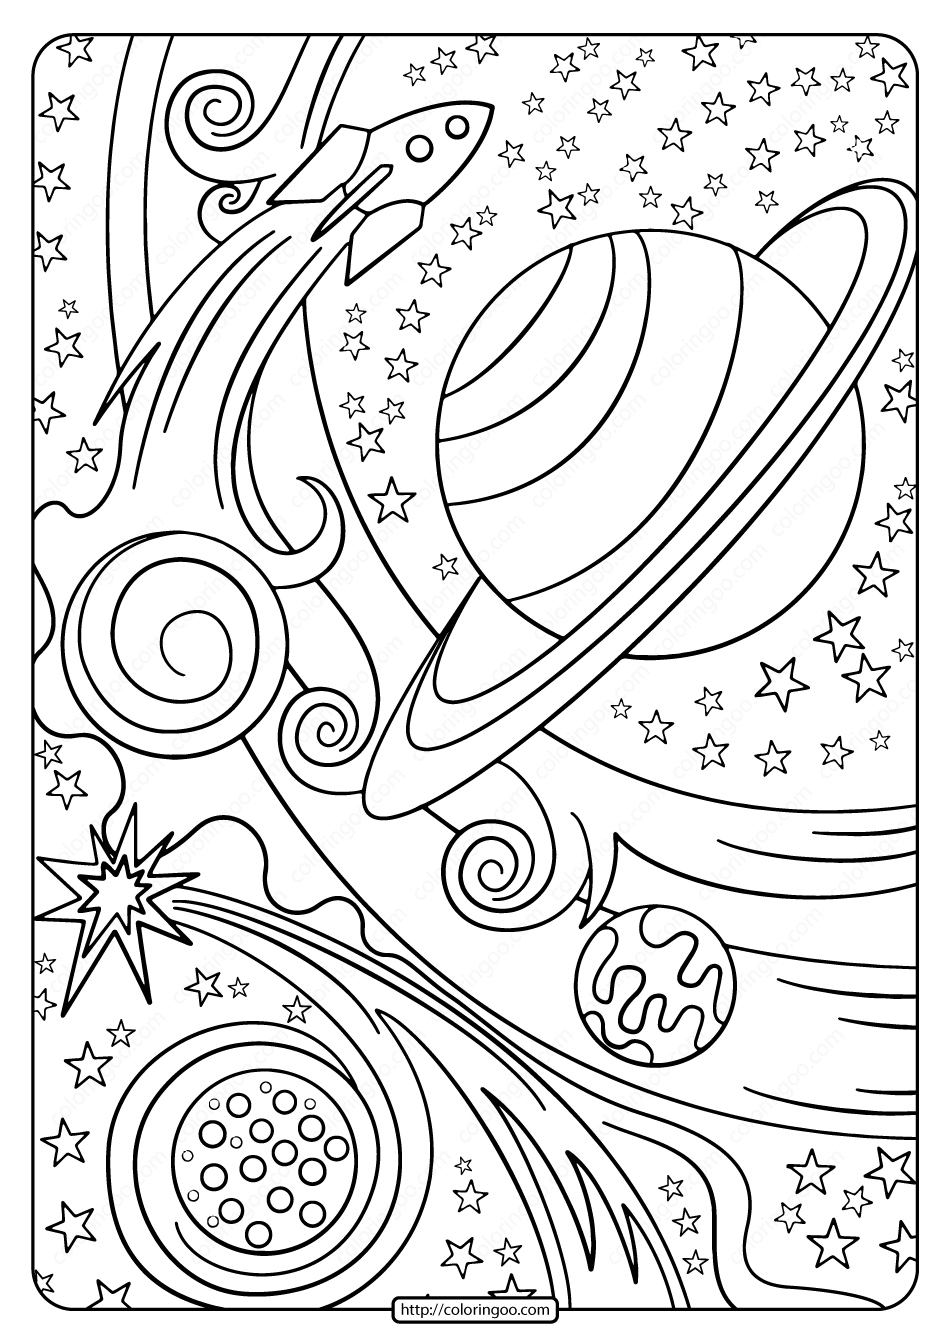 Free Printable Rocket And Planets Pdf Coloring Page In 2020 Planet Coloring Pages Star Coloring Pages Space Coloring Pages